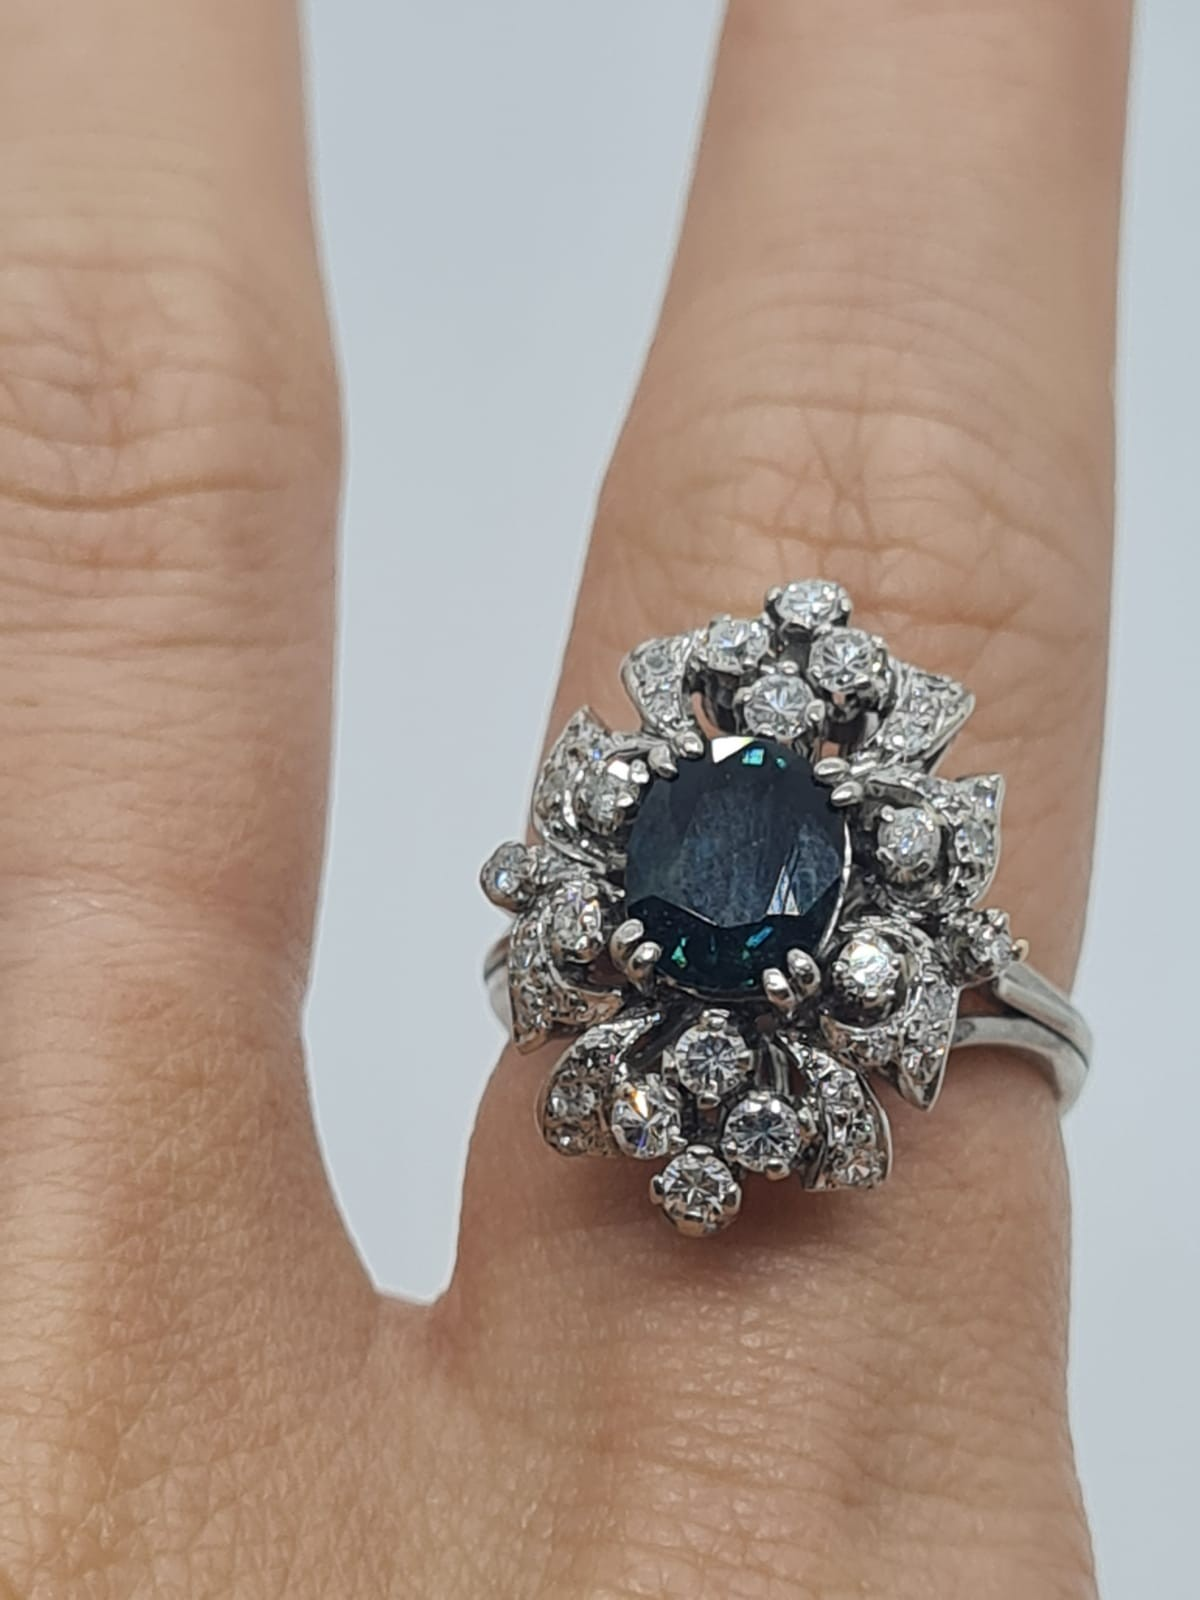 14k white gold diamond cluster ring with sapphire centre marked Tiffany & Co , weight 6.2g and - Image 4 of 7